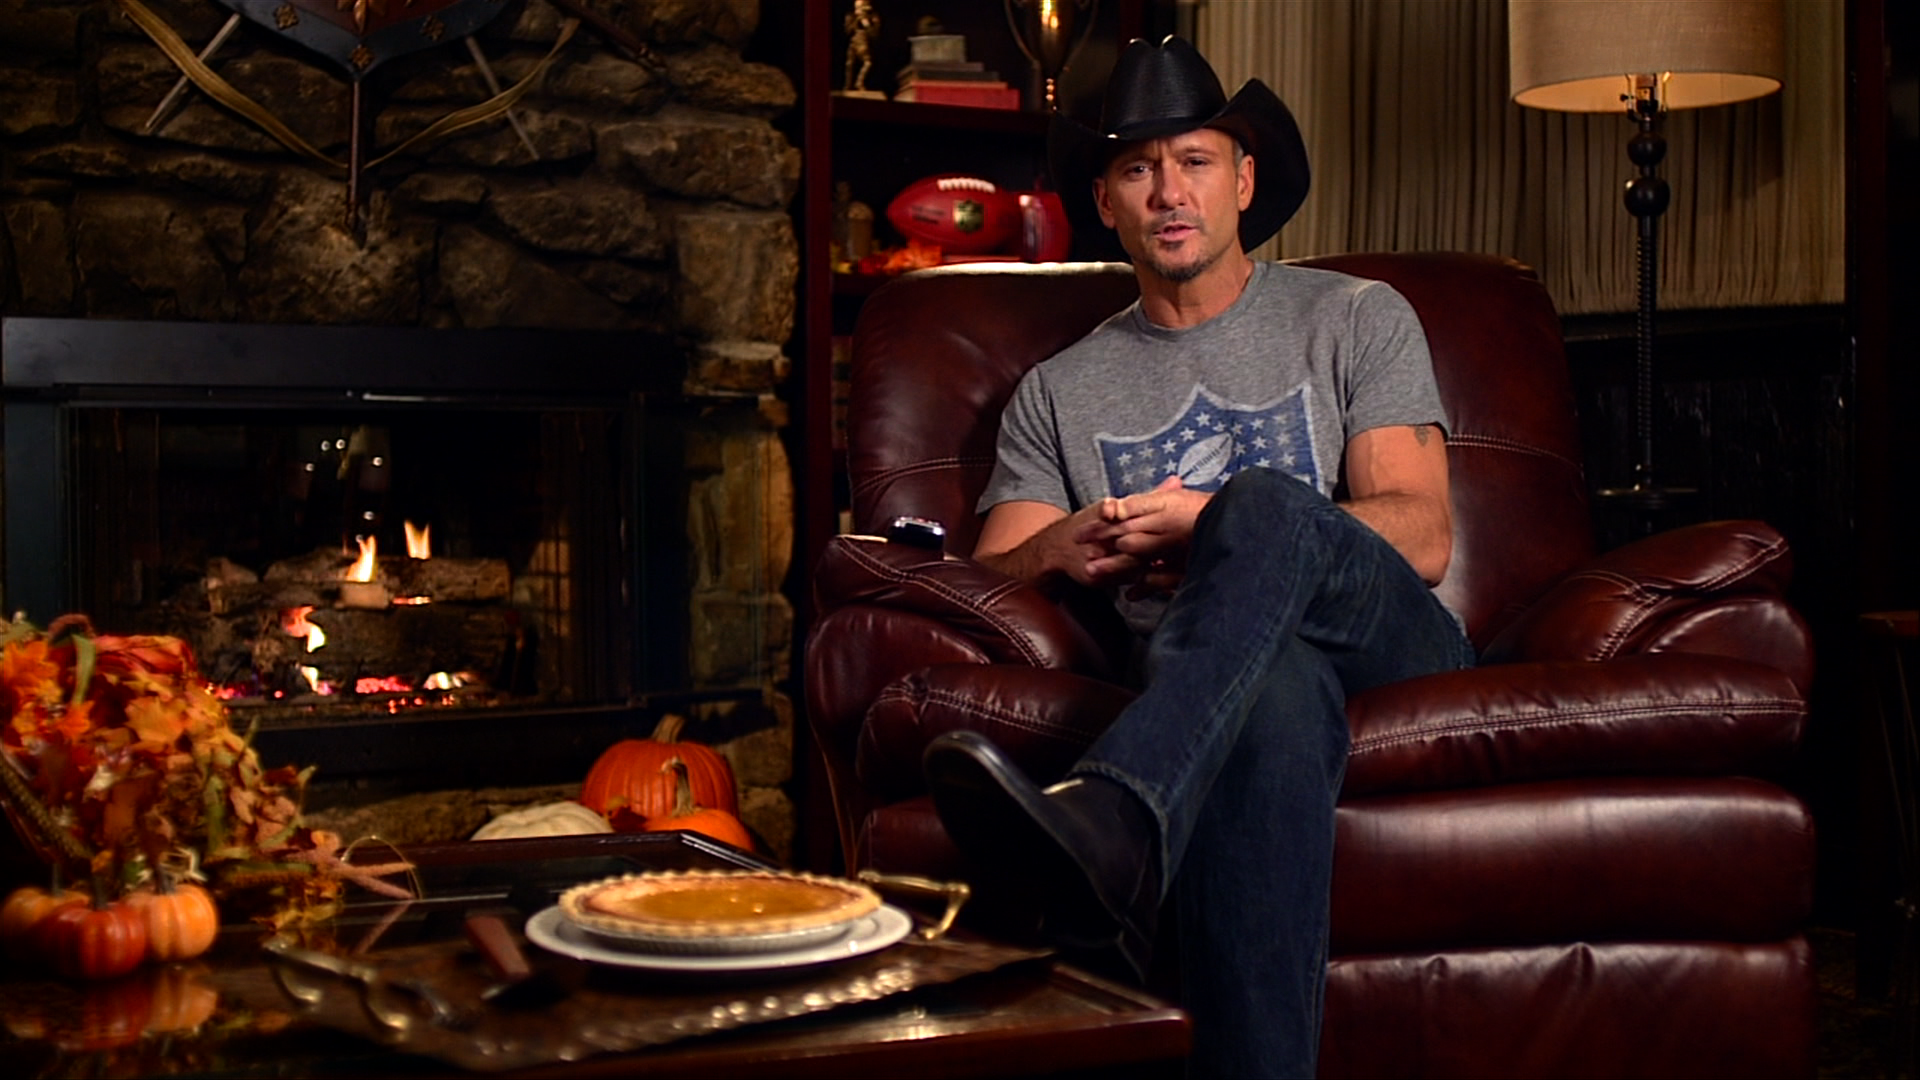 Tim McGraw Waco, Texas   Director of Photography   Roger Woodruff